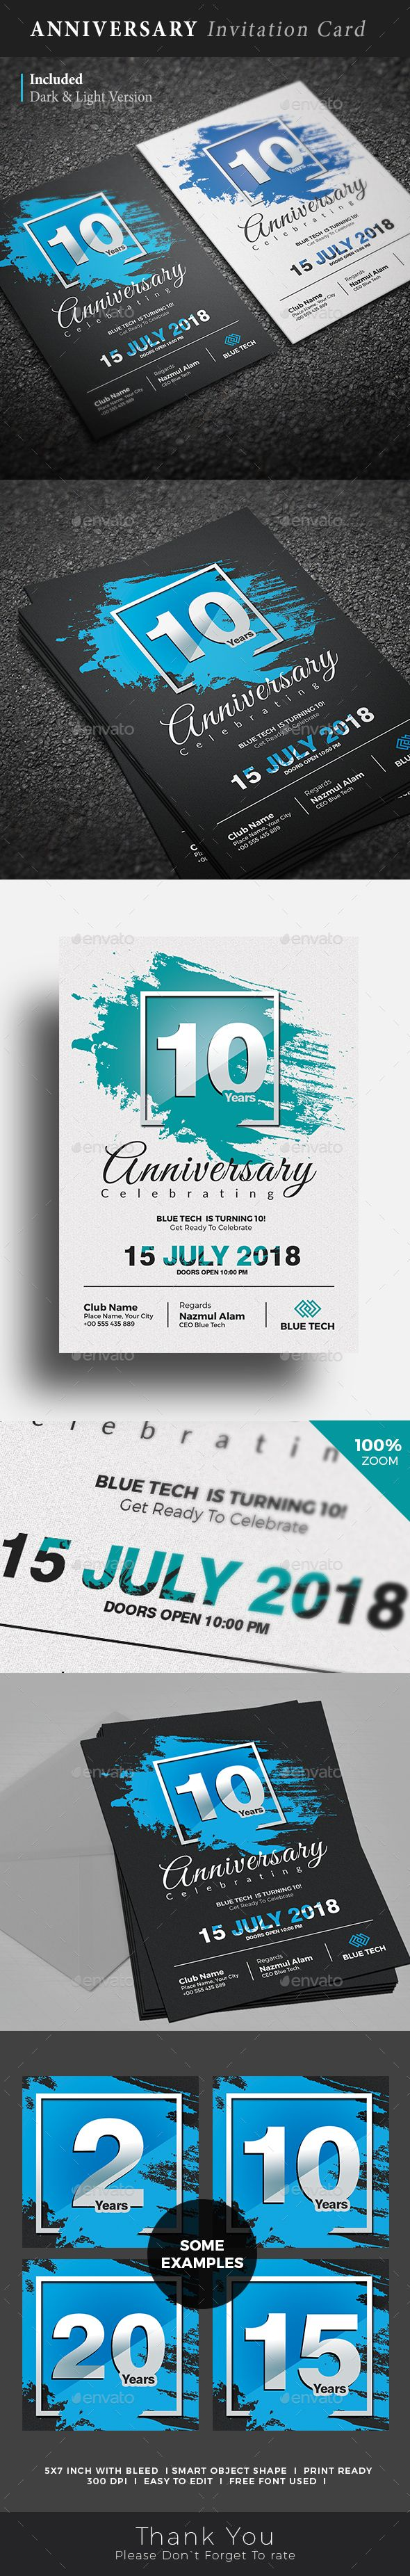 Anniversary Invitation Card Template PSD Download here